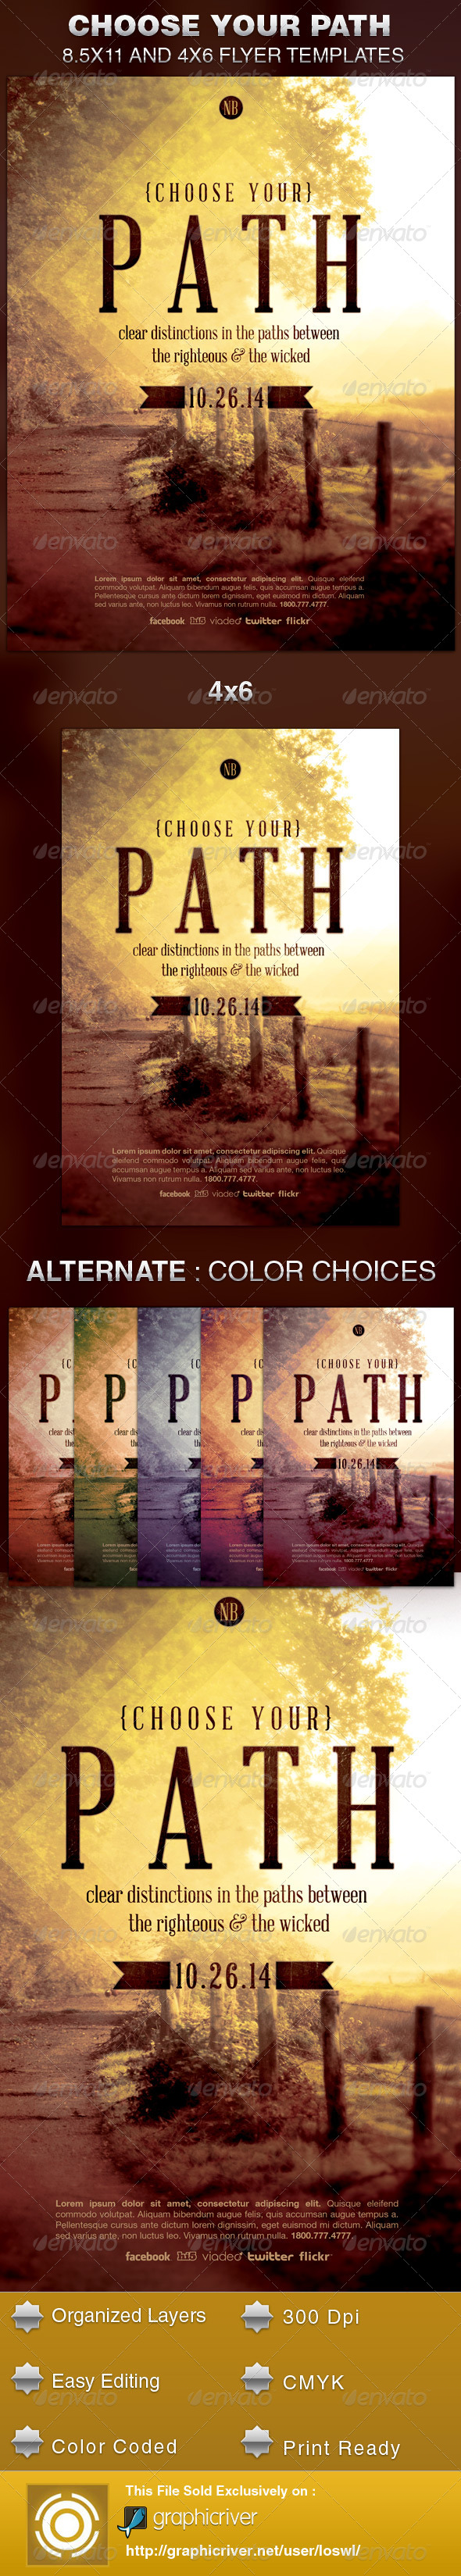 GraphicRiver Choose your Path Church Flyer Template 5822303